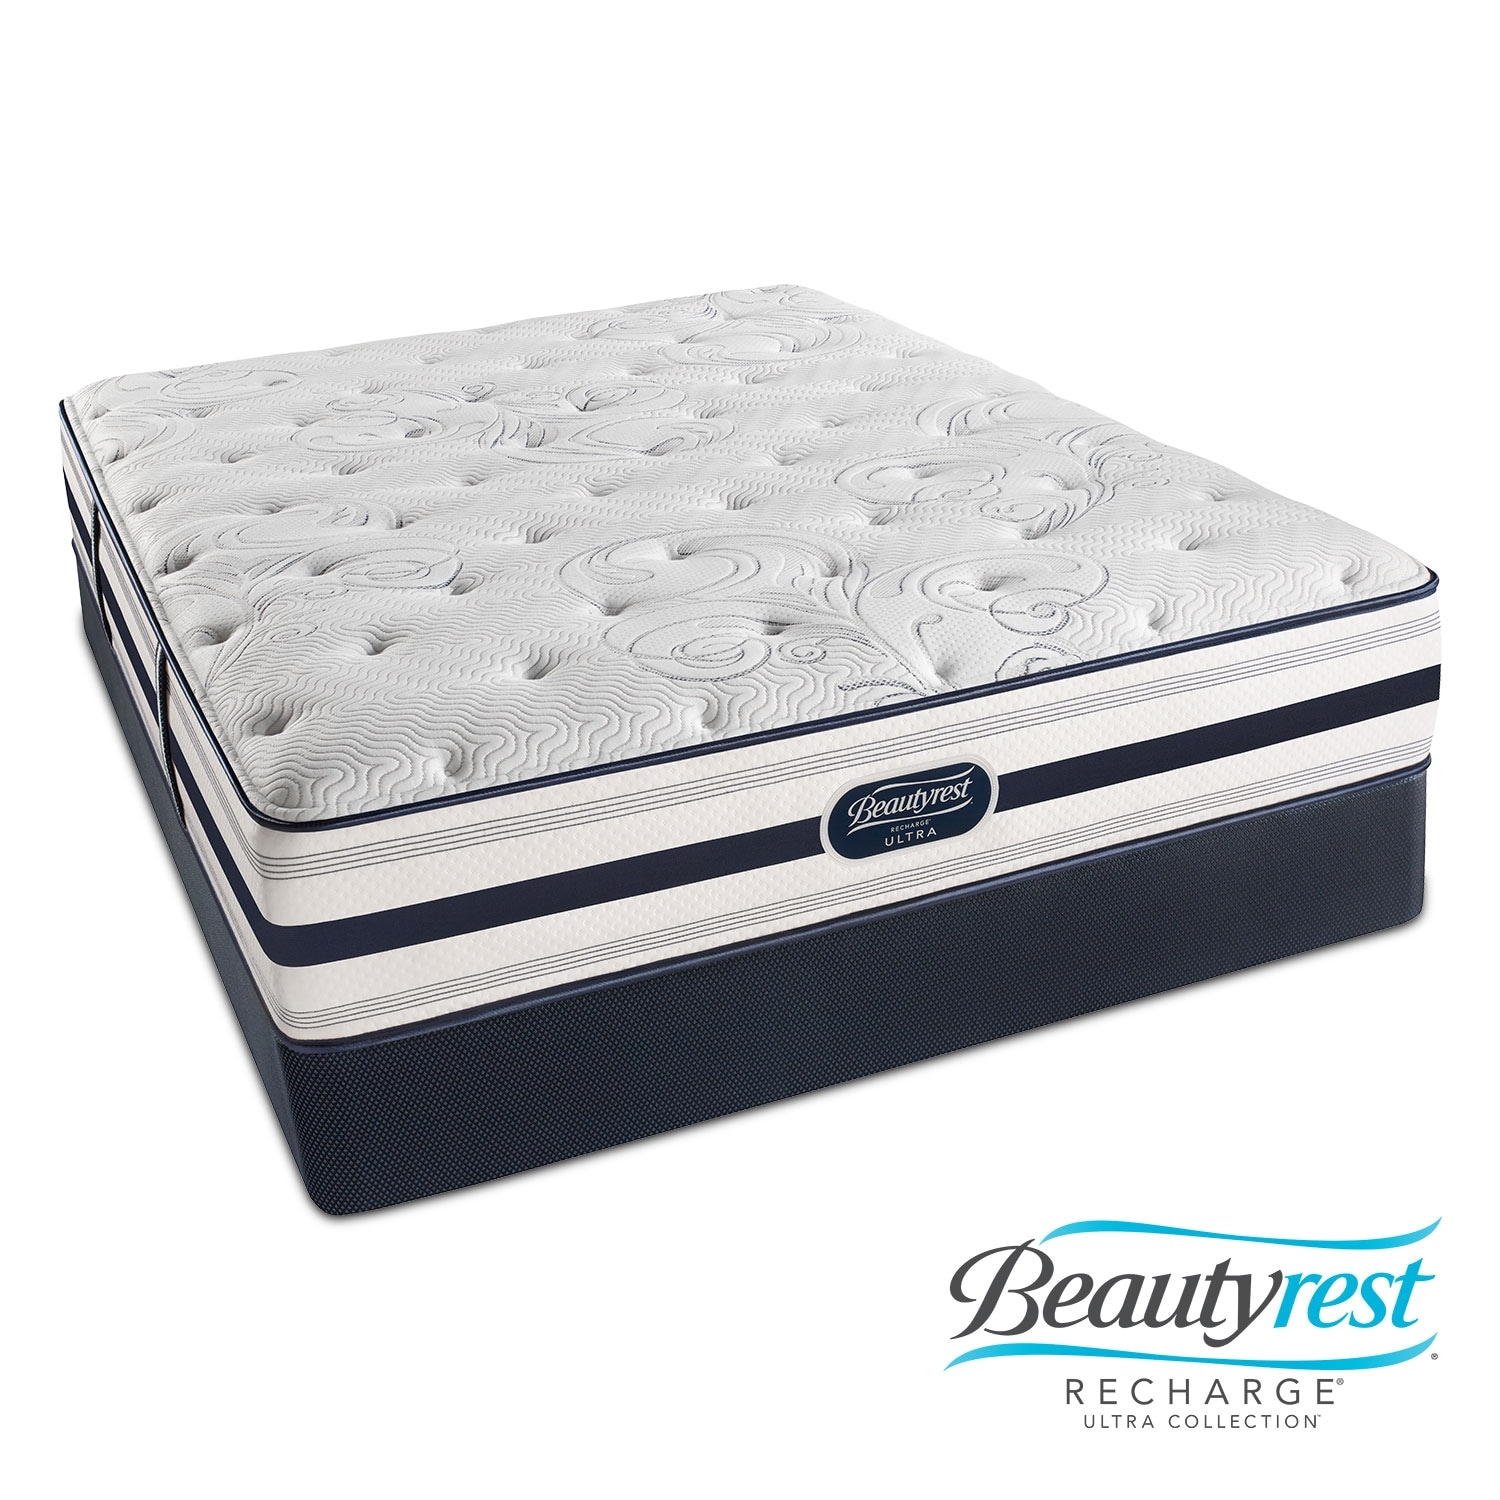 Mattresses and Bedding - Cerise Plush Twin XL Mattress/Foundation Set